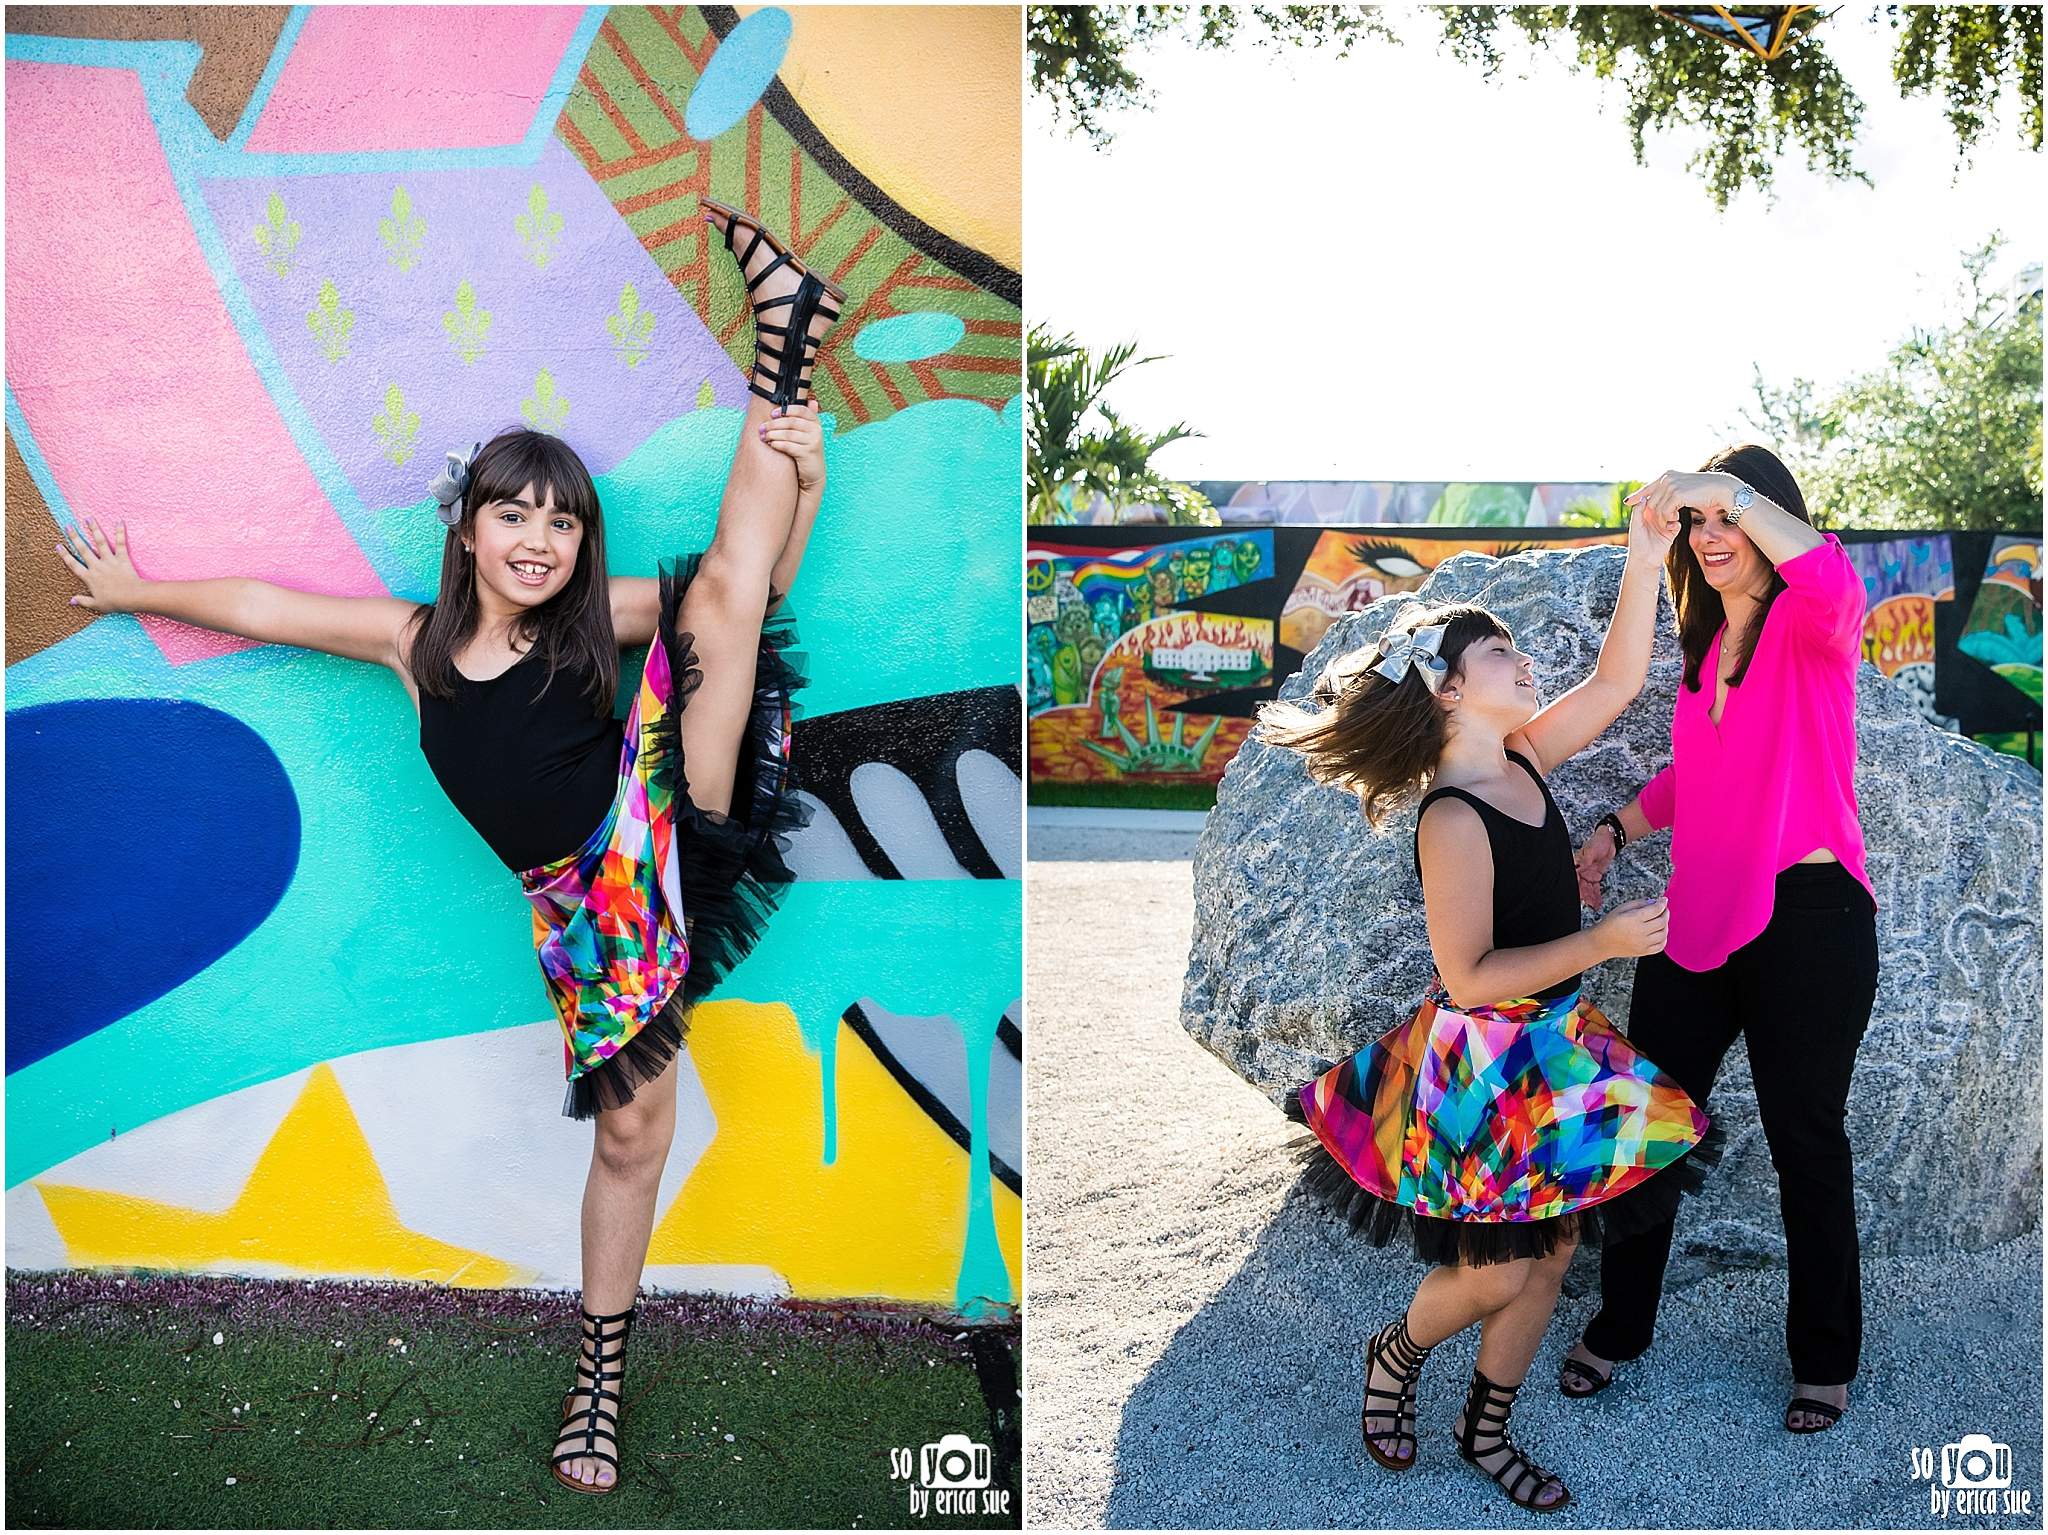 so-you-by-erica-sue-family-photographer-miami-fl-wynwood-mother-daughter-3266 (2).jpg